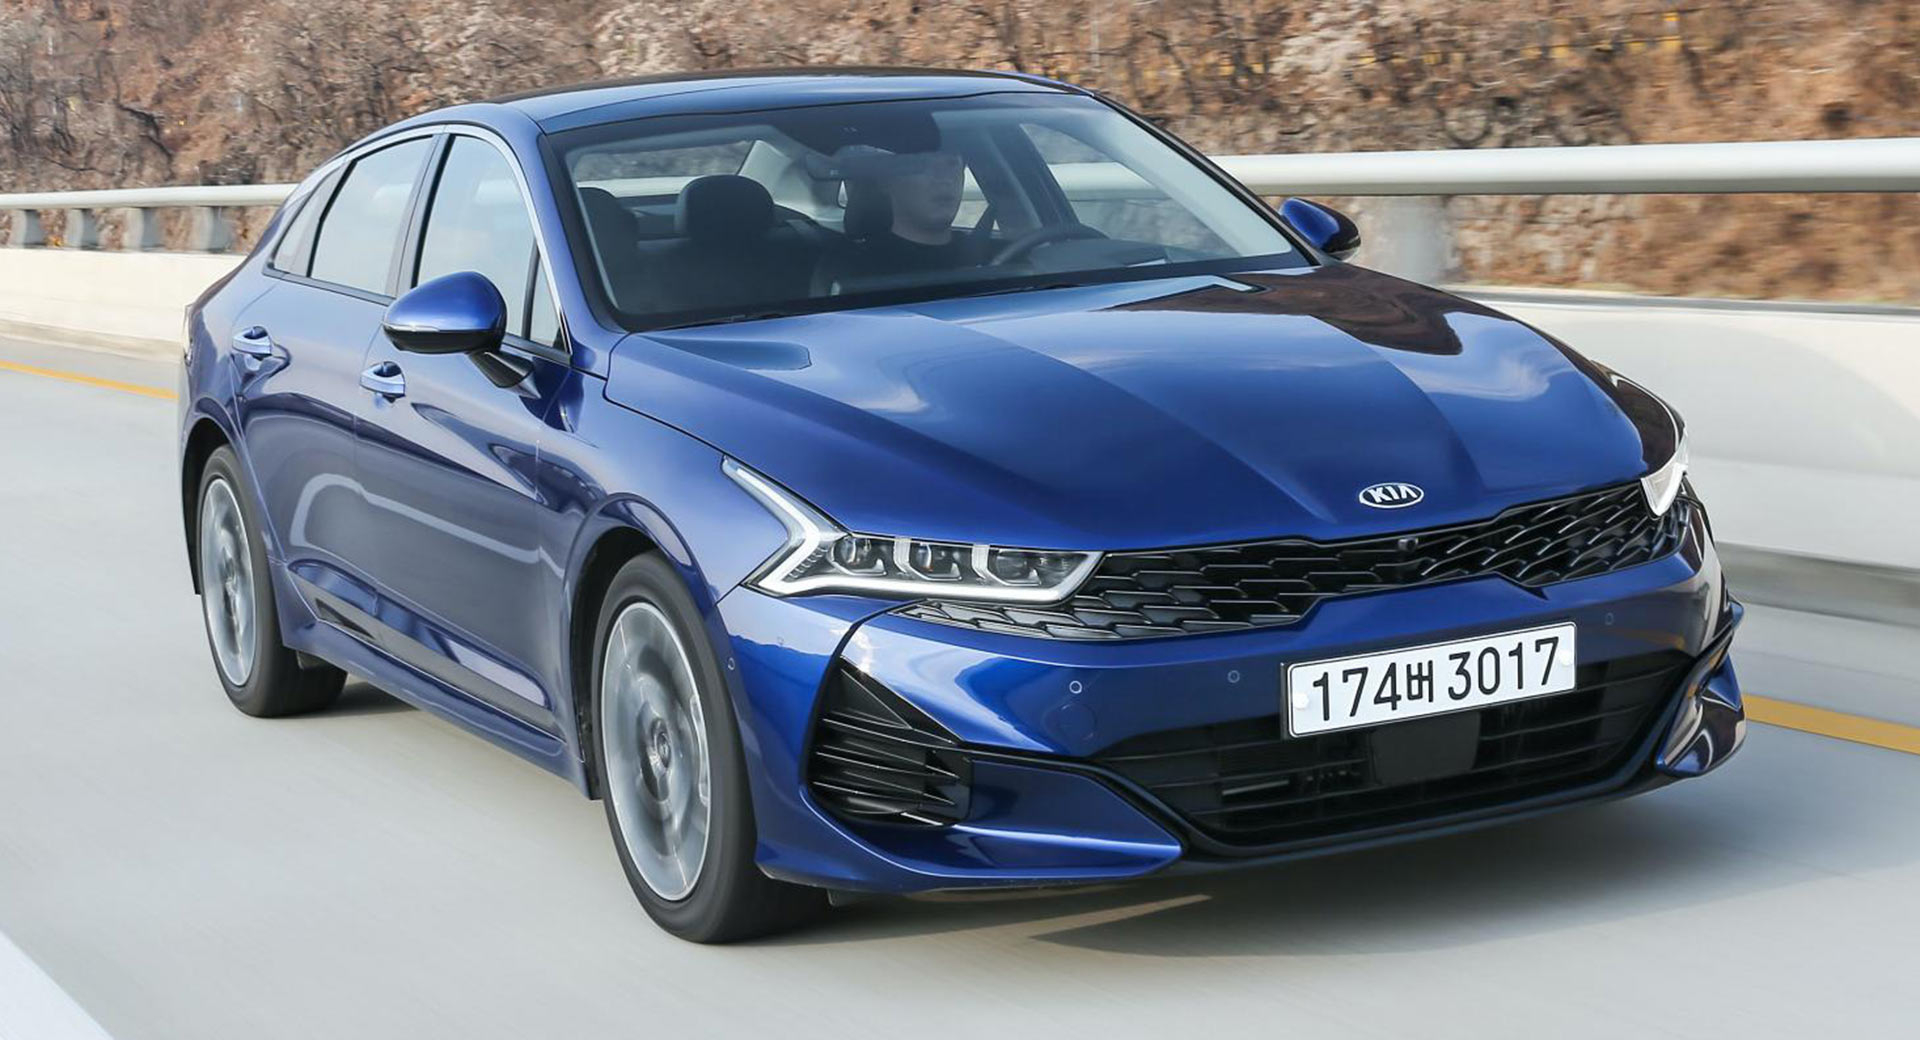 2021 Kia Optima Set To Be Renamed The K5, Offer Awd In U.s. - 2022 Kia Optima Gas Mileage, Changes, Color Options